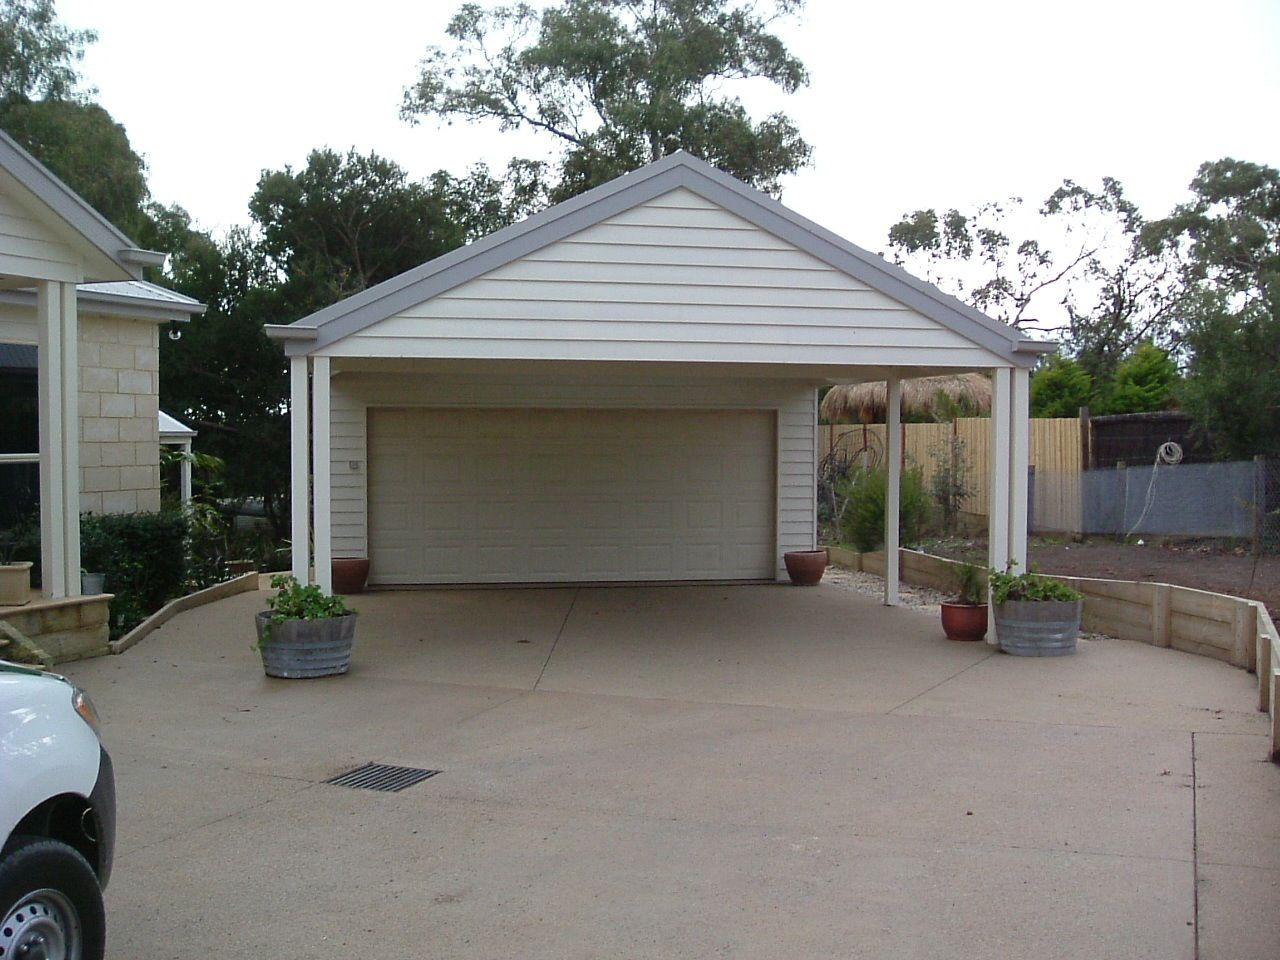 Carport ideas carport ideas pinterest carport ideas for House plans with carport